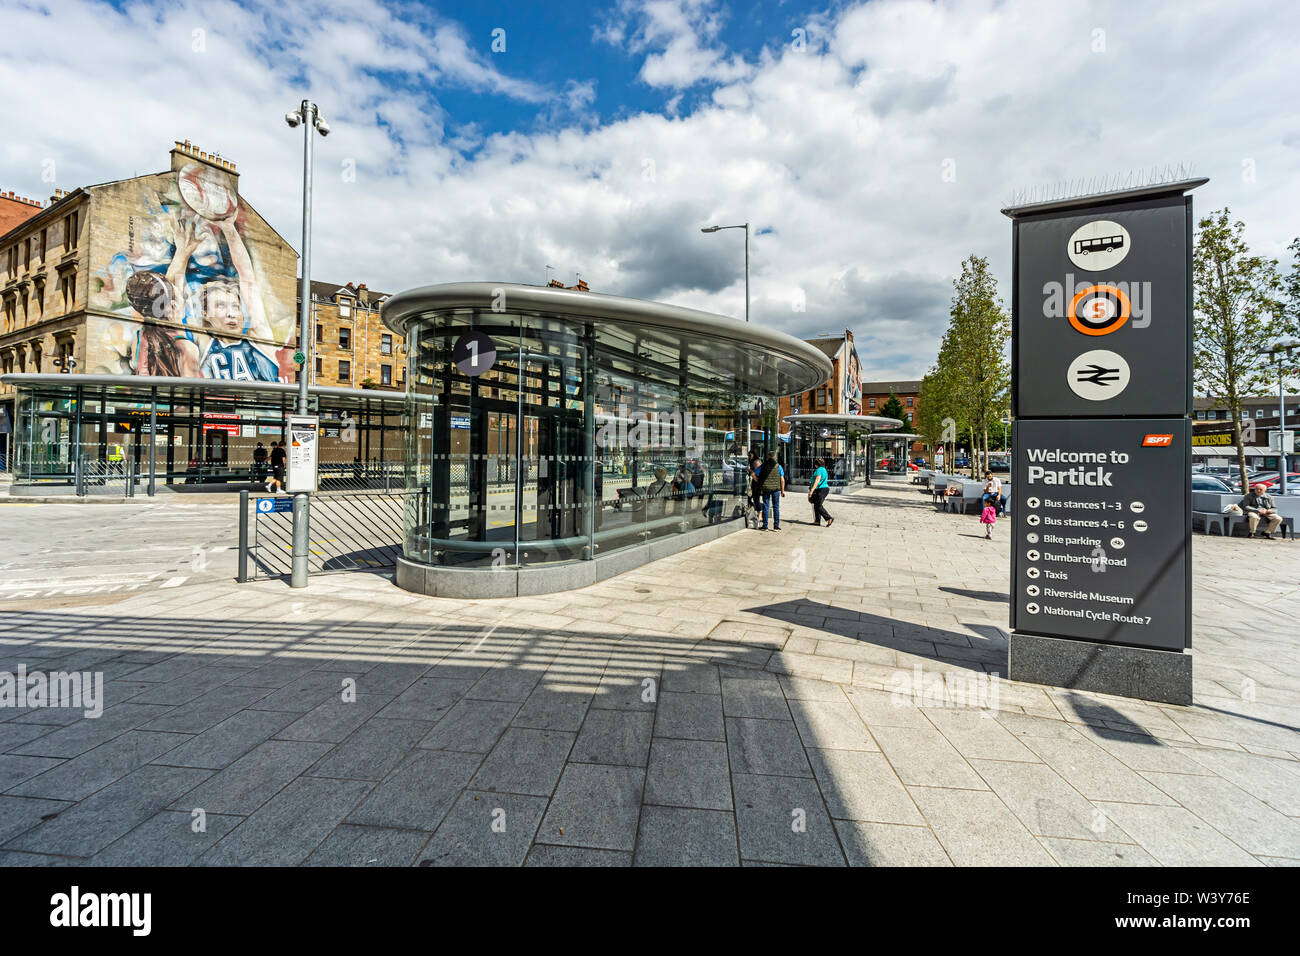 Bus Hub Stock Photos & Bus Hub Stock Images - Alamy